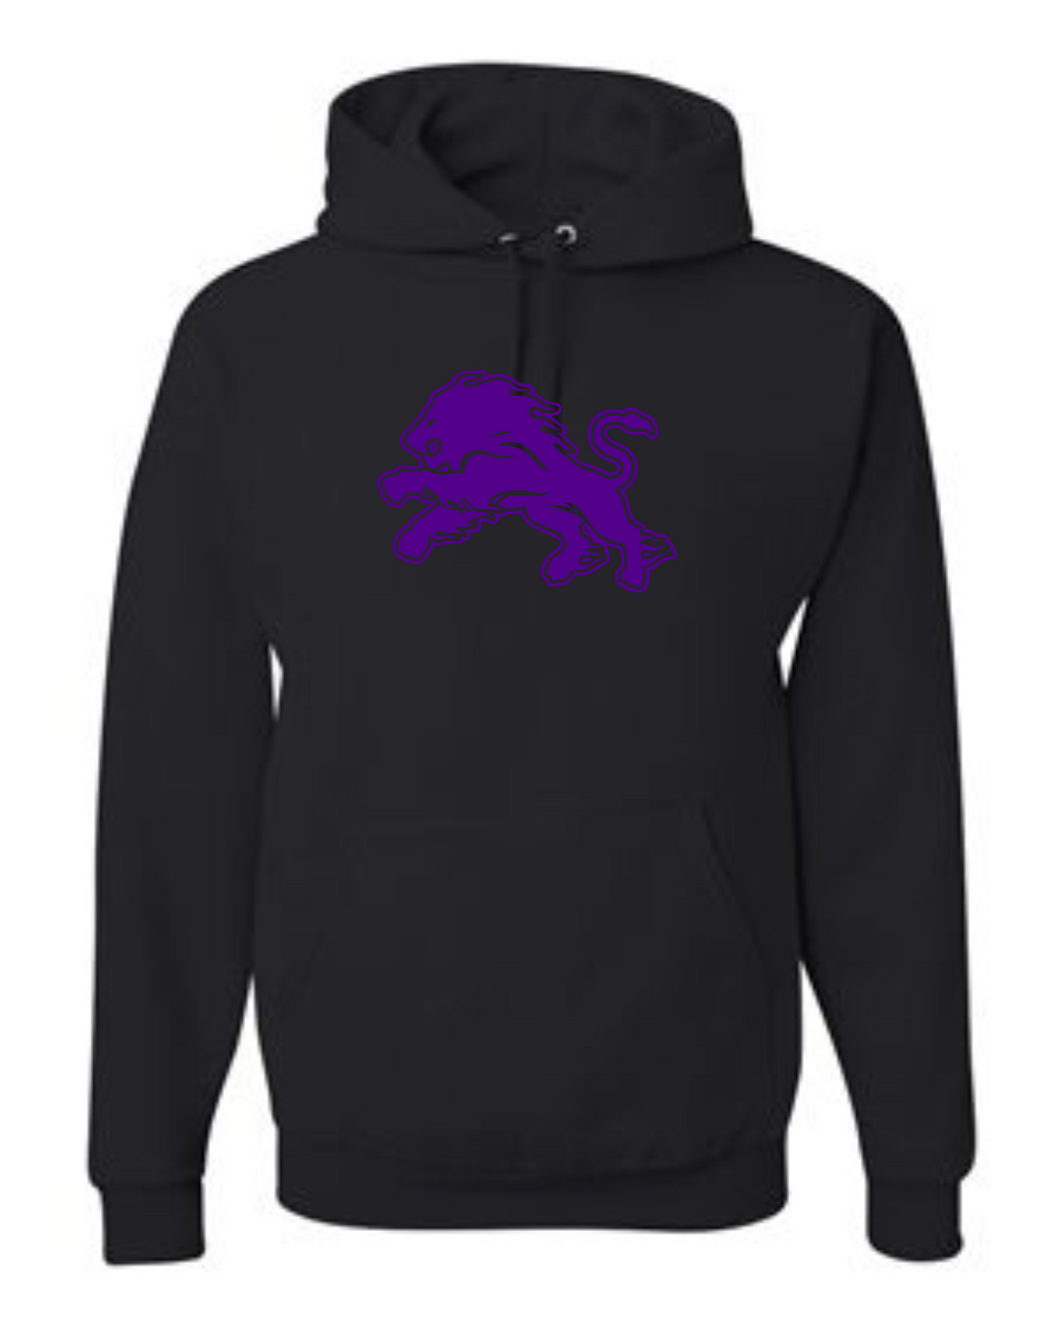 Dryden Football Hoodie- 1 Color Image